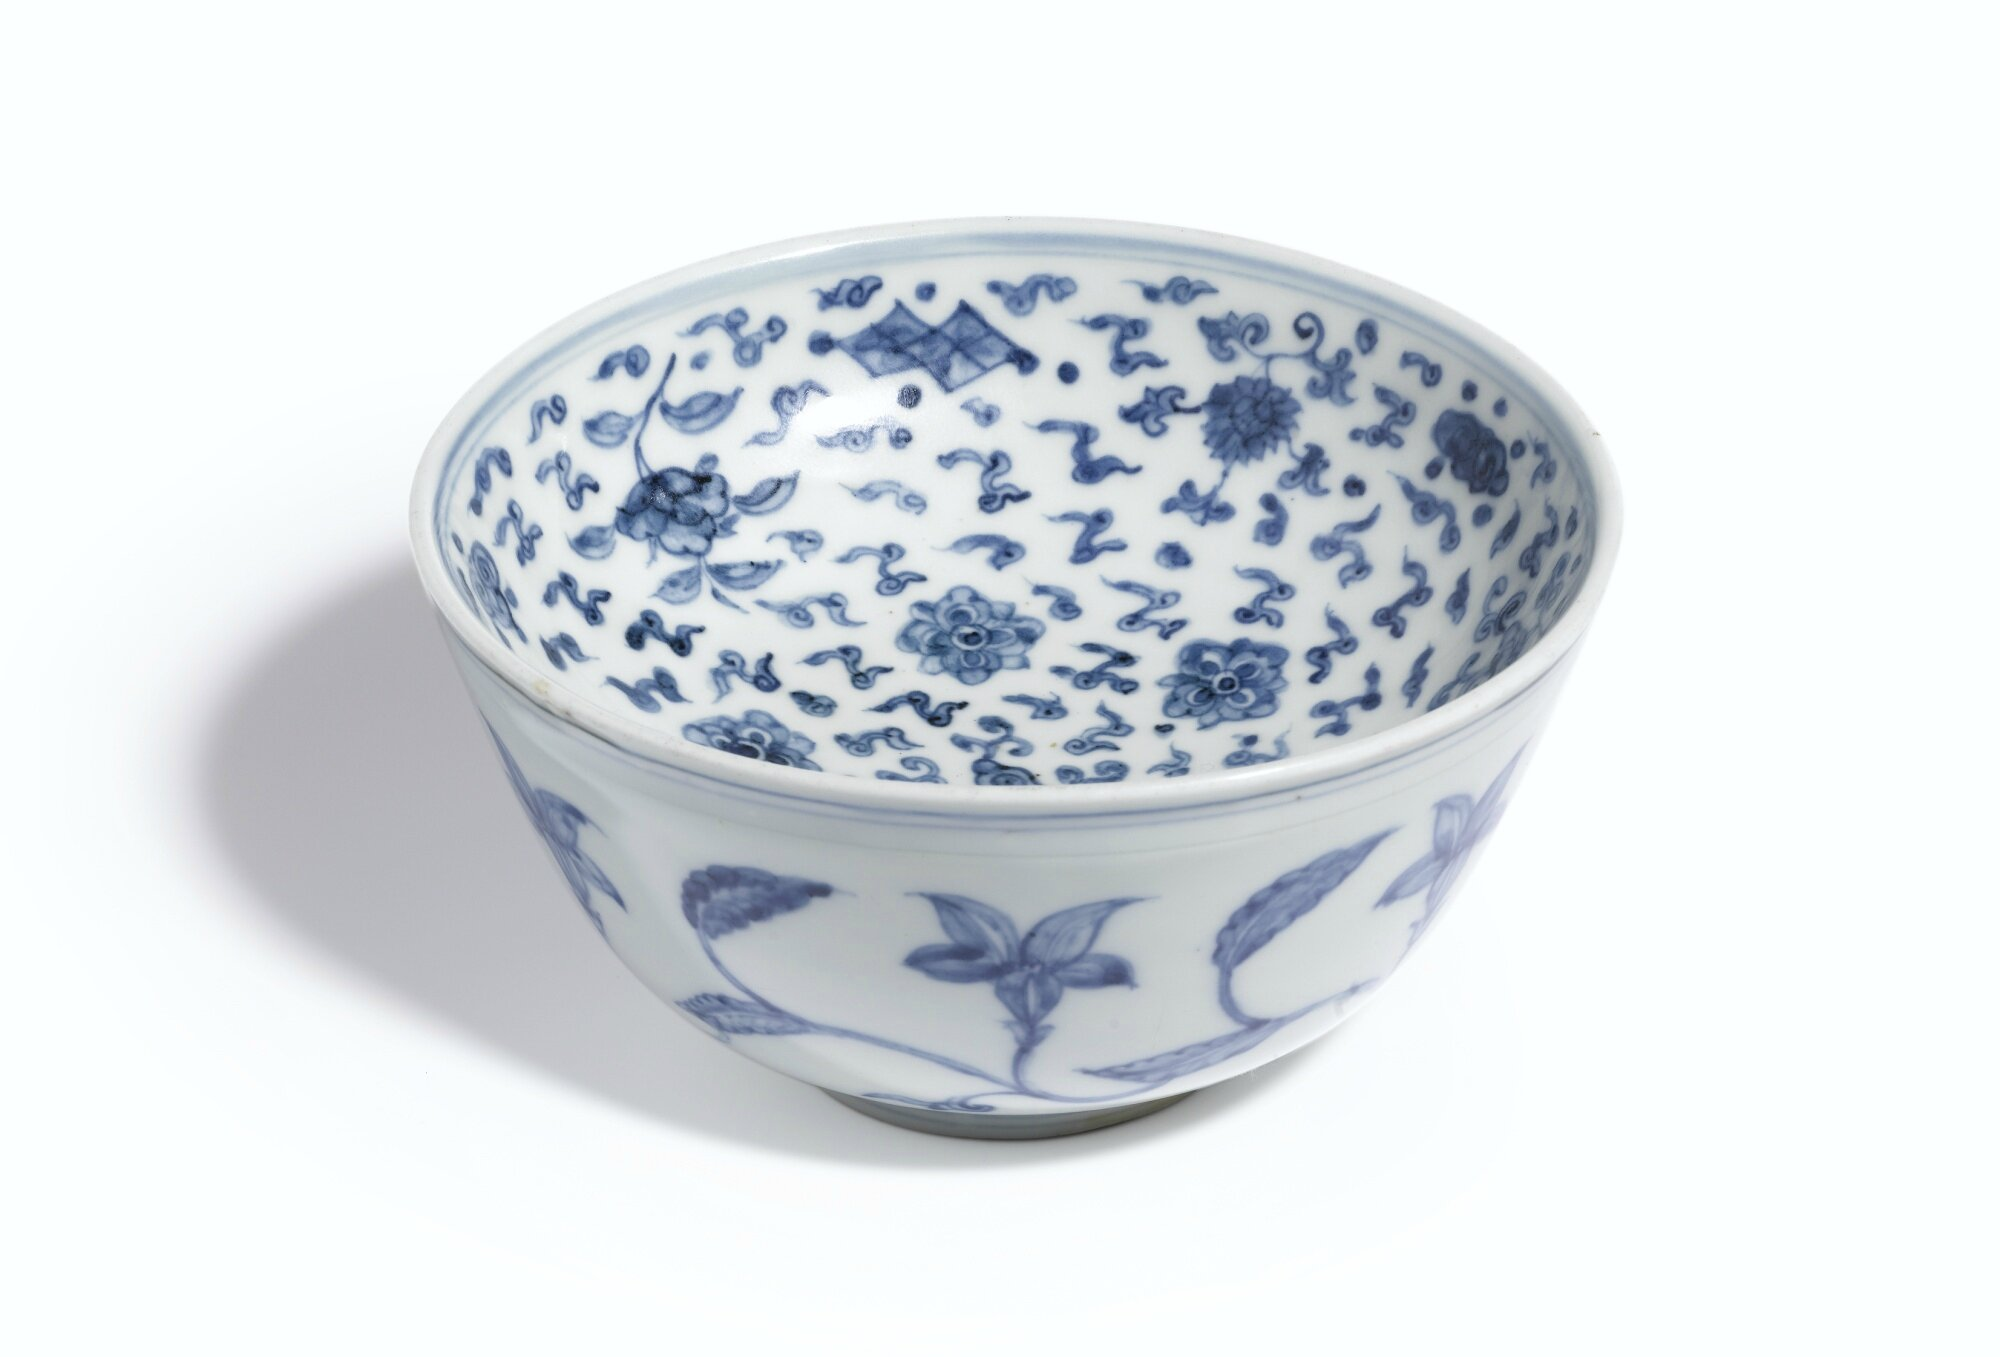 A rare blue and white warming bowl, Ming Dynasty, Chenghua Period